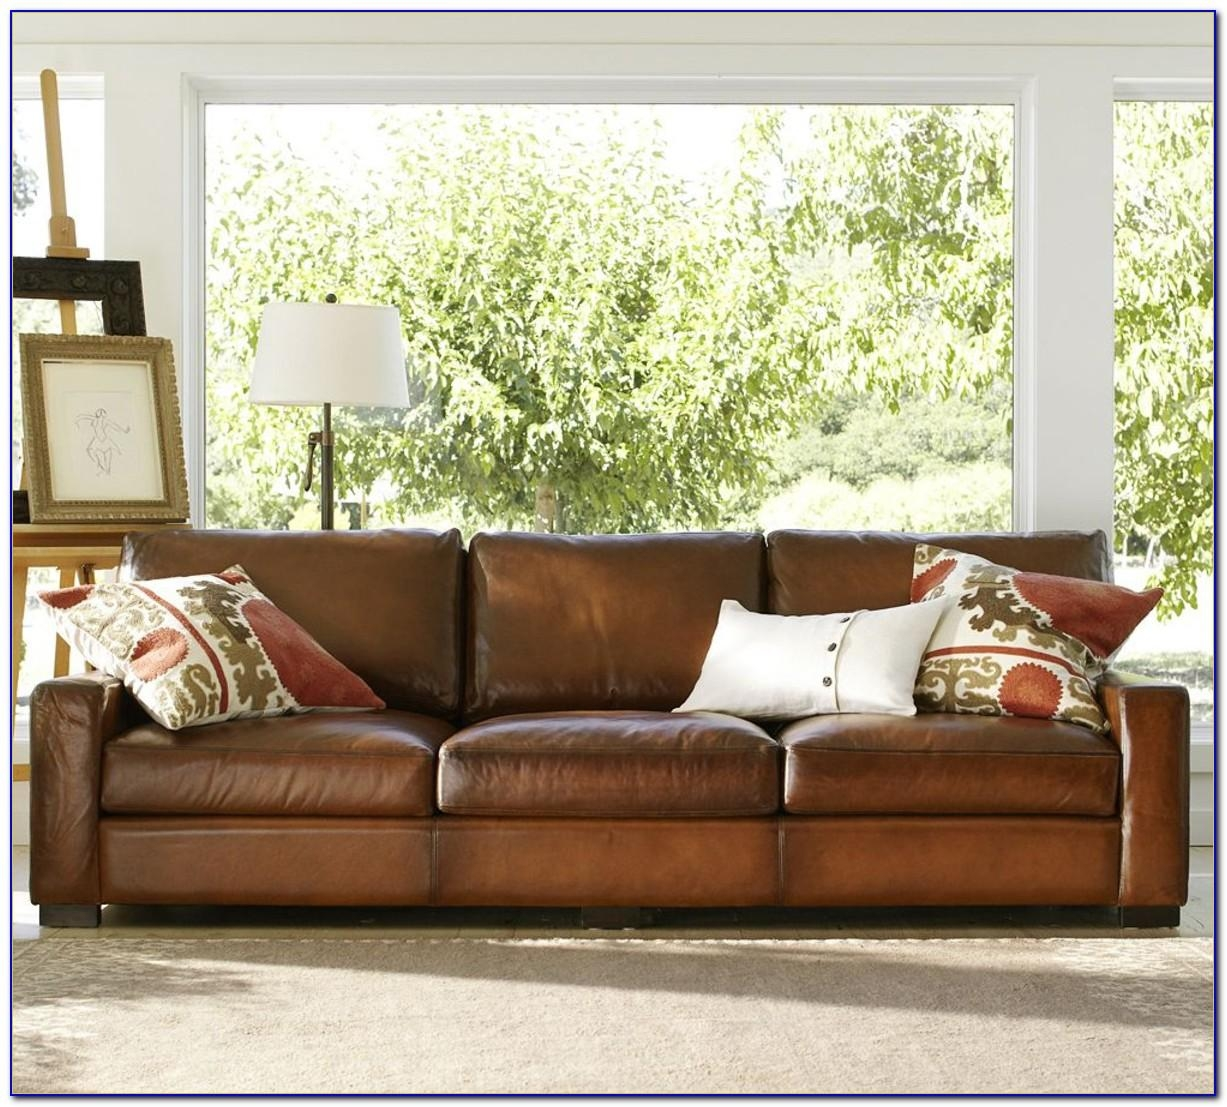 leather sofa craigslist condo size sectional bed canada 20 collection of ideas